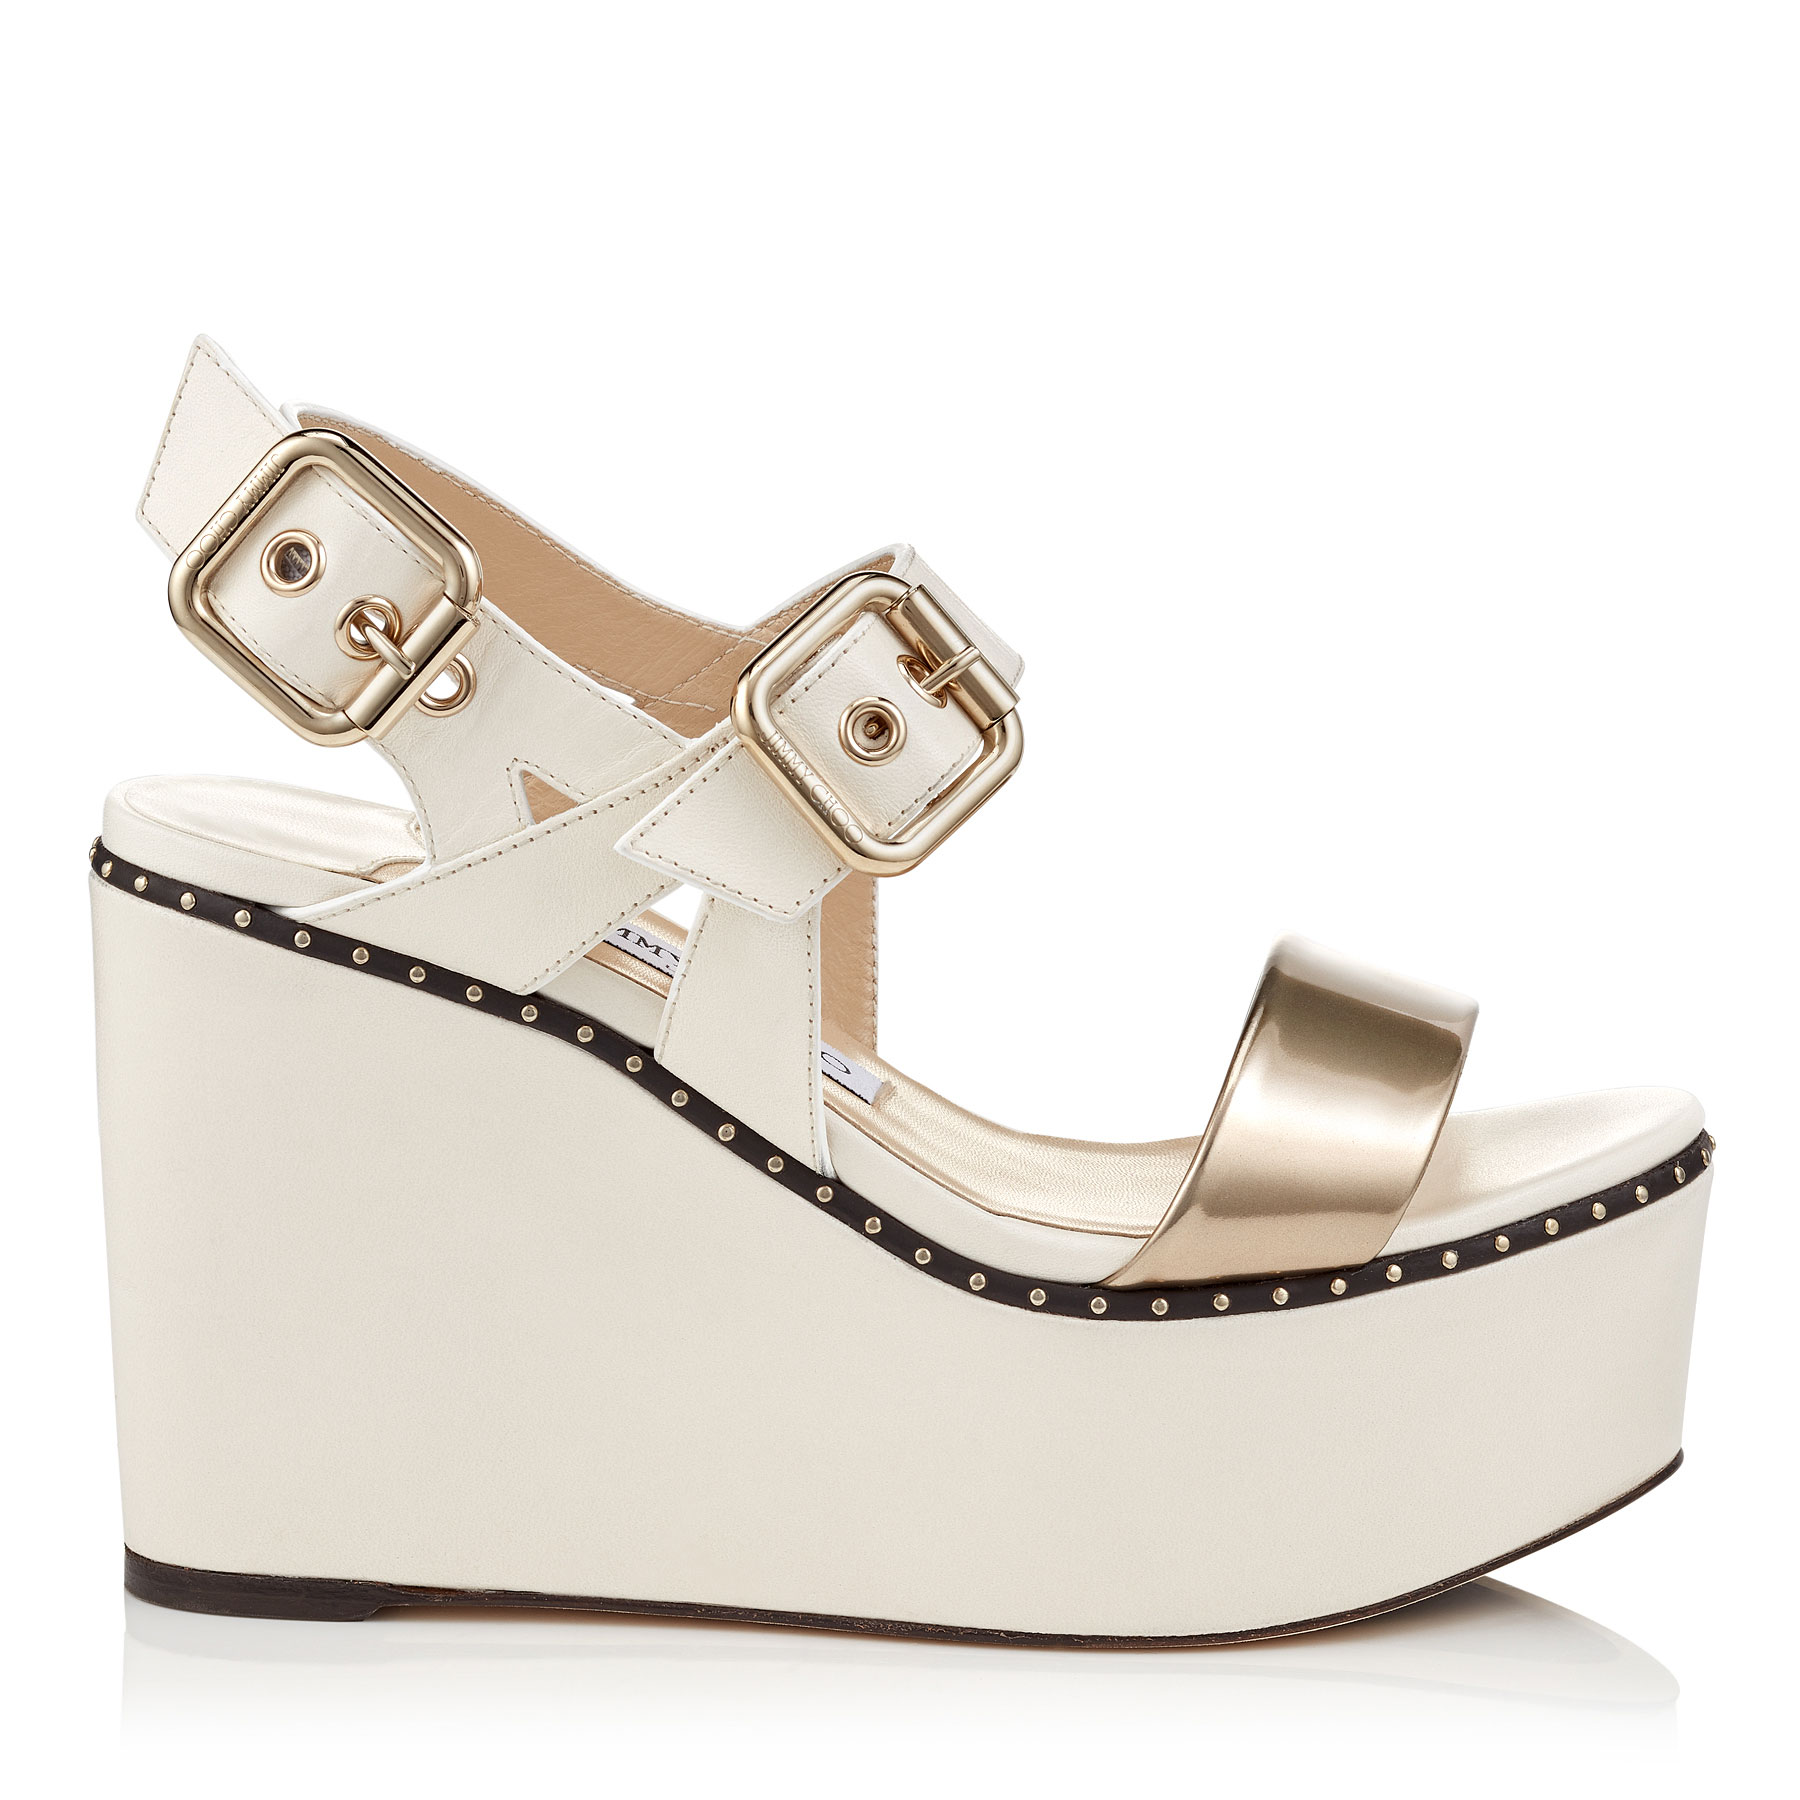 ALTON 100 Chalk Vacchetta and Gold Liquid Mirror Leather Wedges by Jimmy Choo